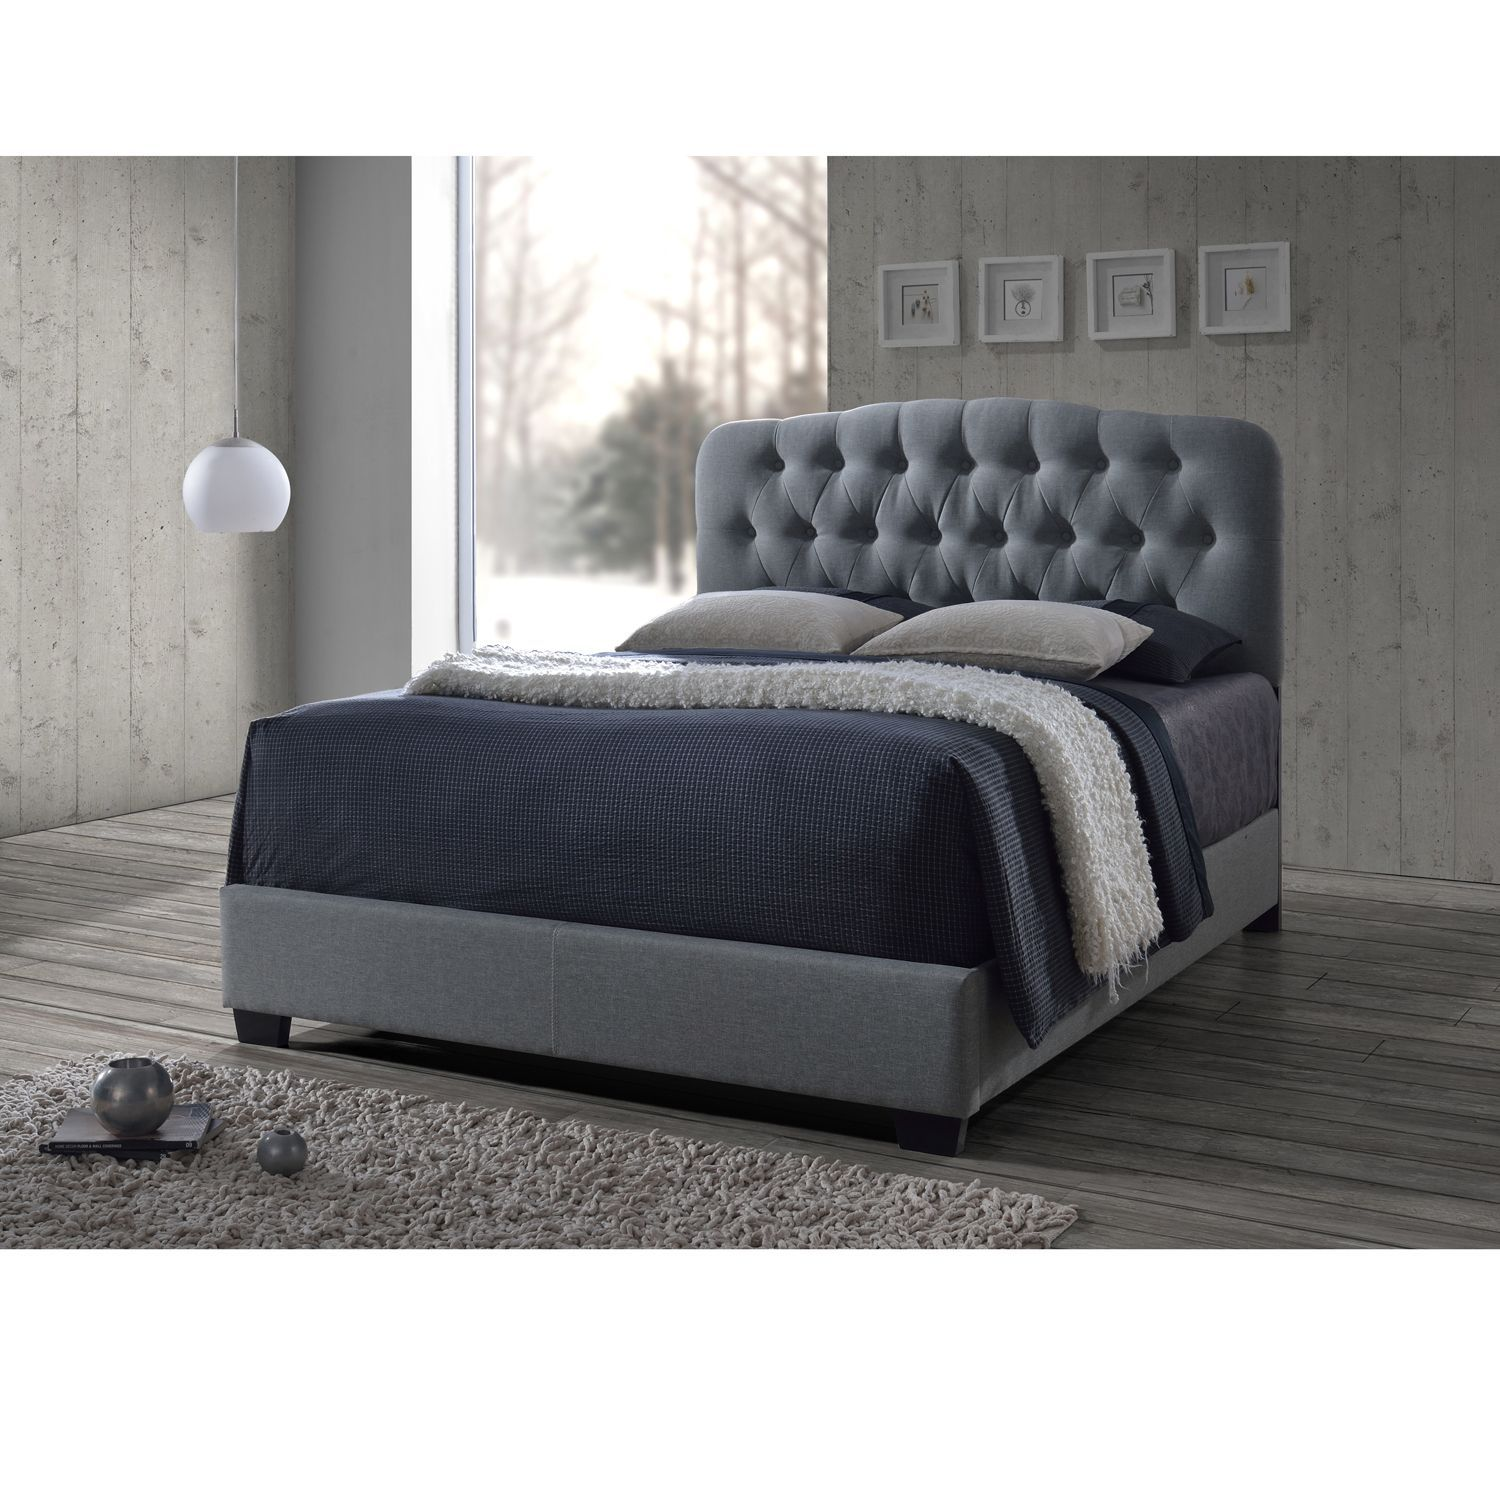 Baxton studio brighton button tufted upholstered modern bedroom bench - Baxton Studio Romeo Contemporary Espresso Button Tufted Grey Upholstered Bed By Baxton Studio